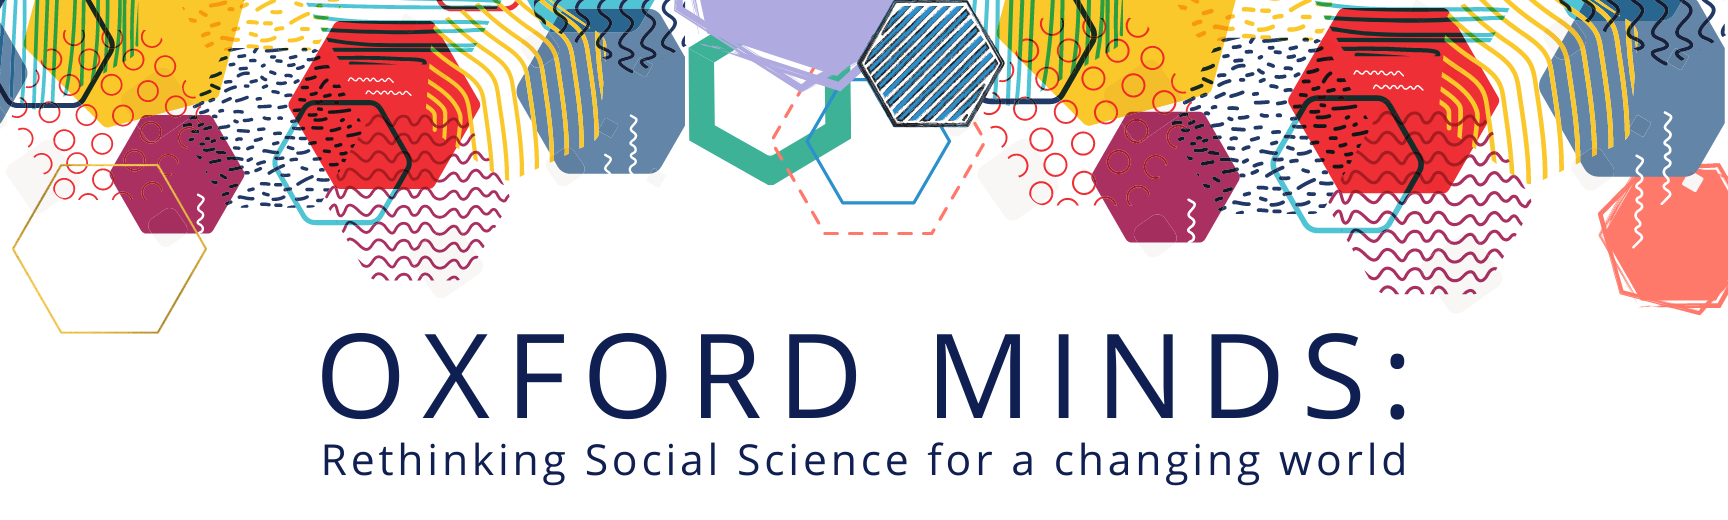 Oxford Minds: Rethinking Social Science for a changing world